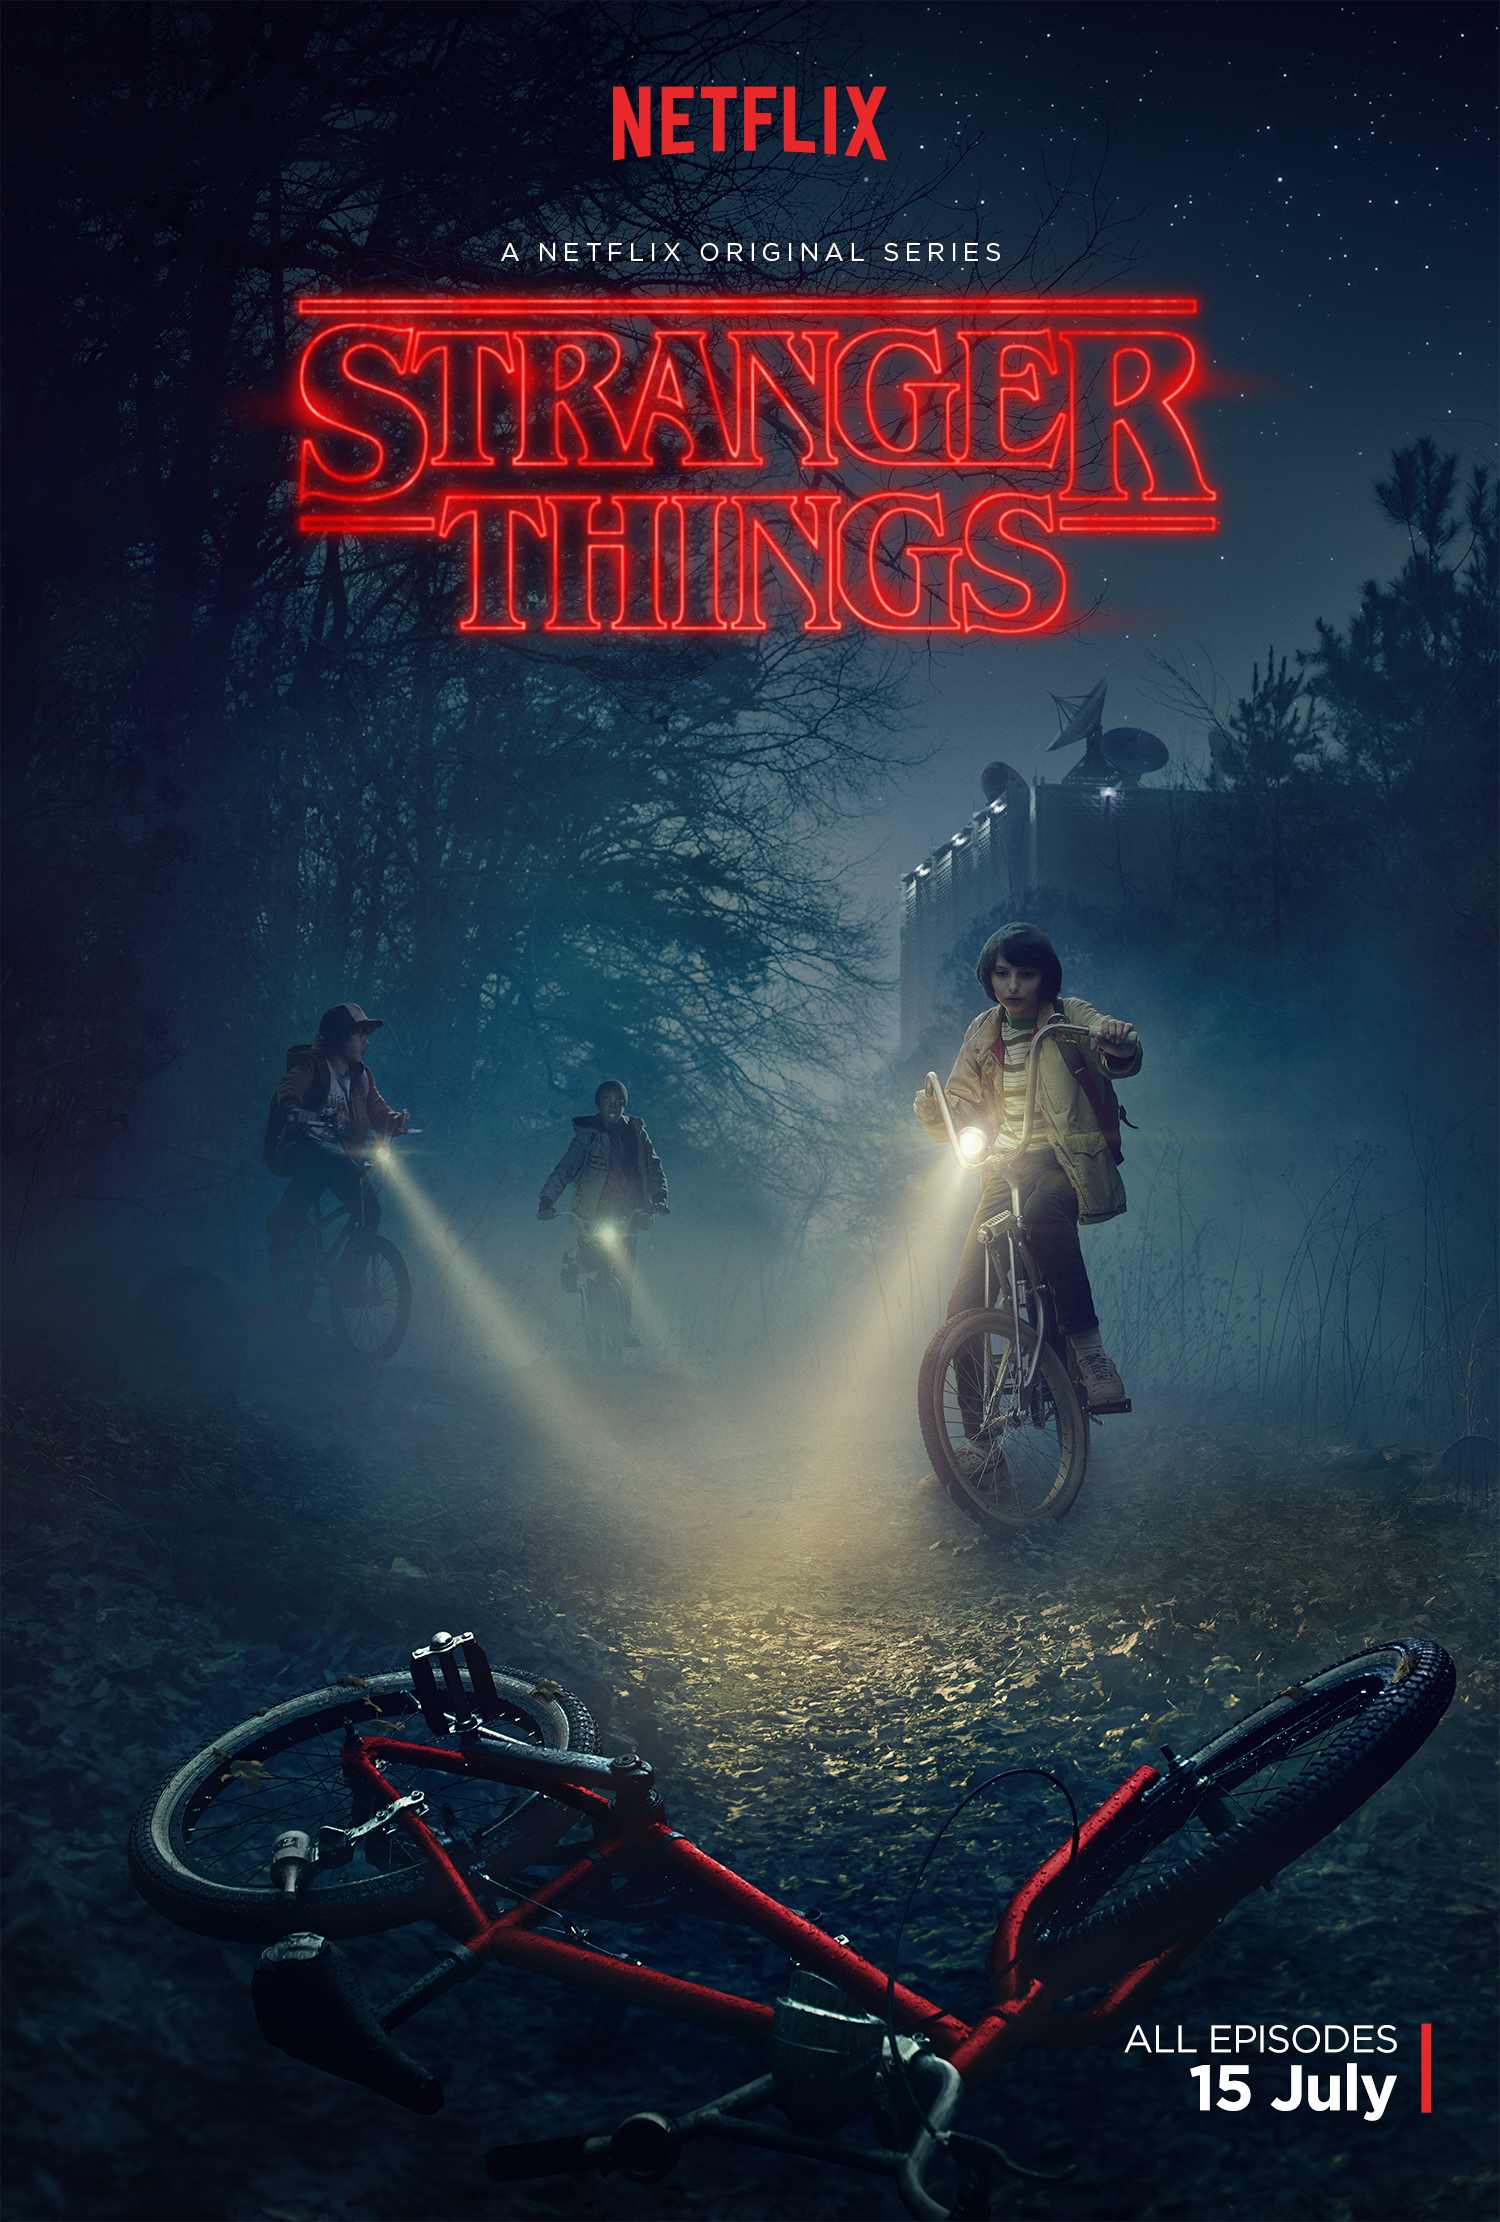 stranger-things-poster-full-1.jpg